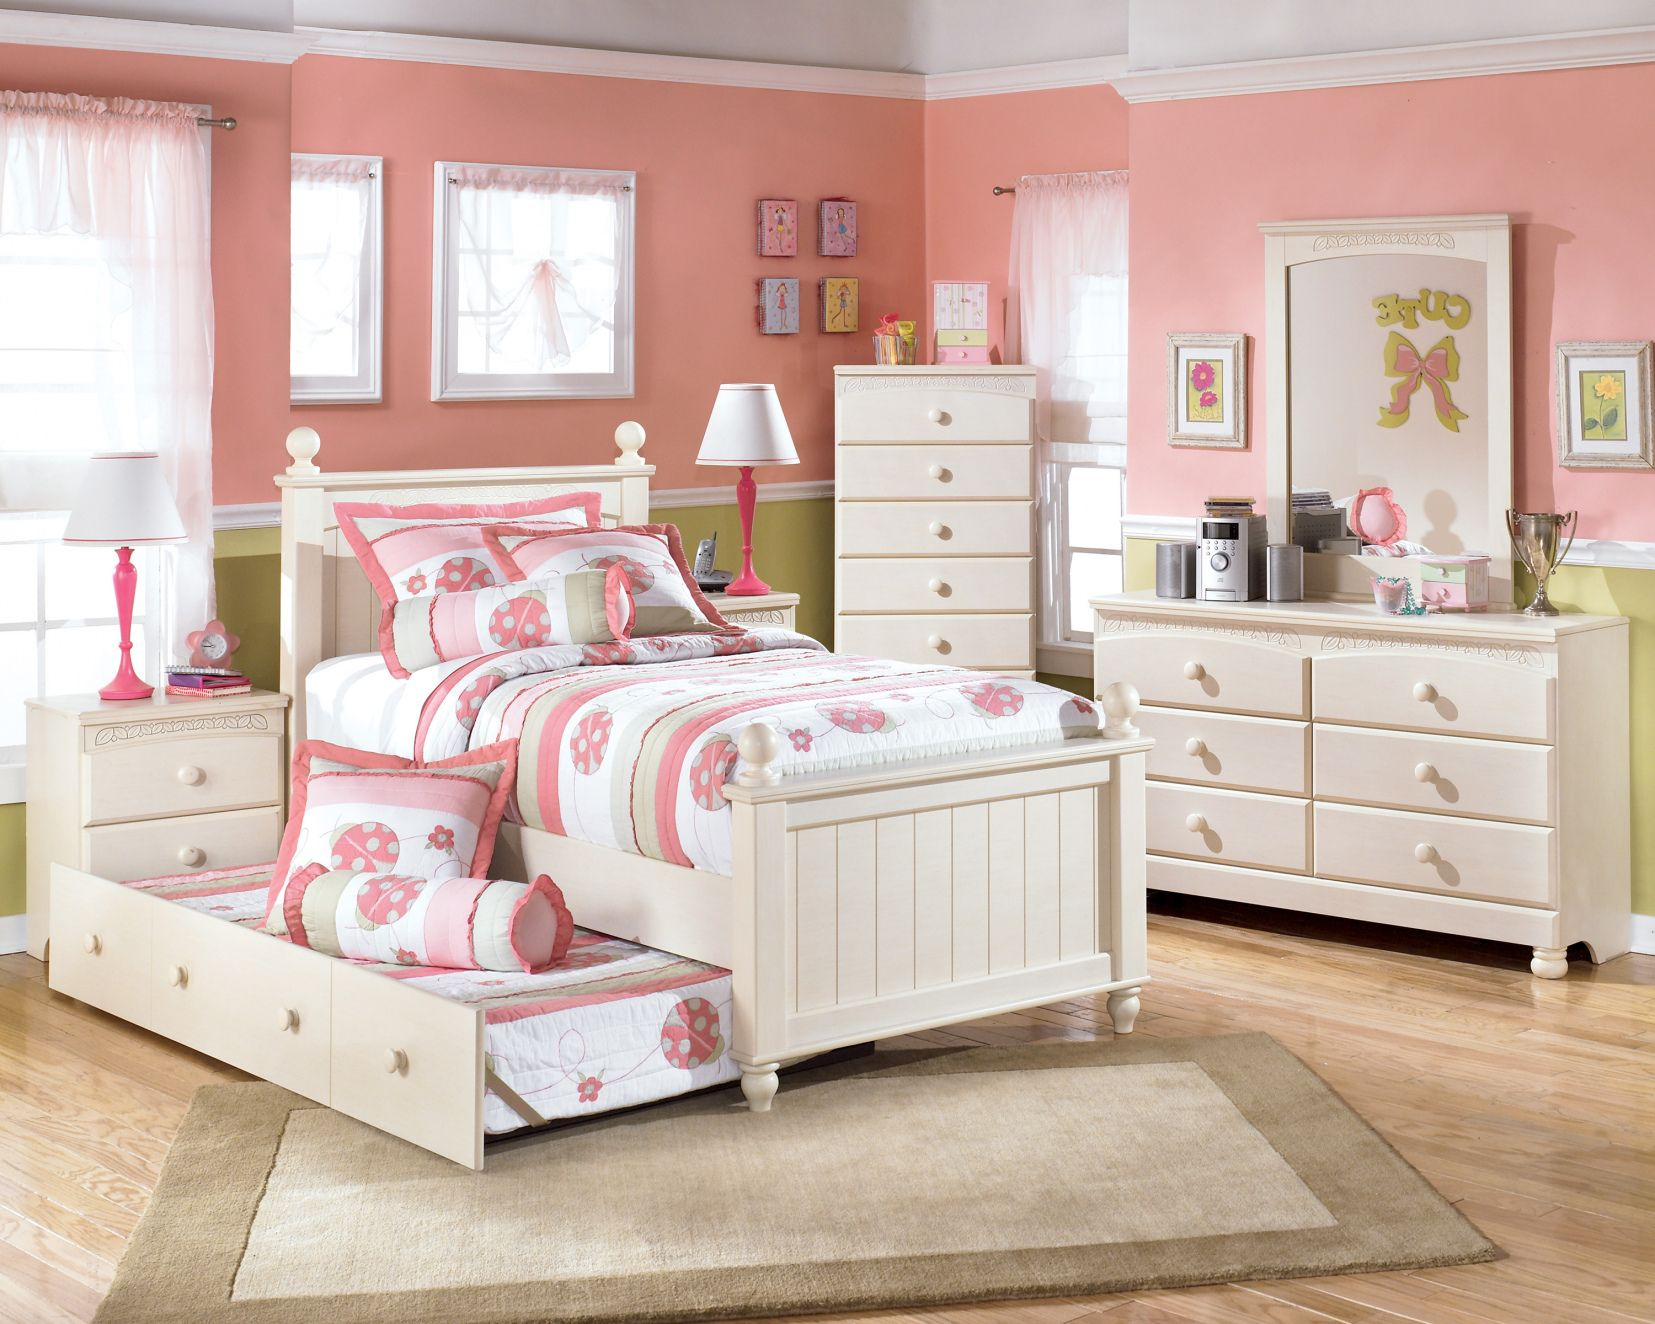 2019 Rooms To Go Kid Bedroom Sets Window Treatment Ideas Check More At Http